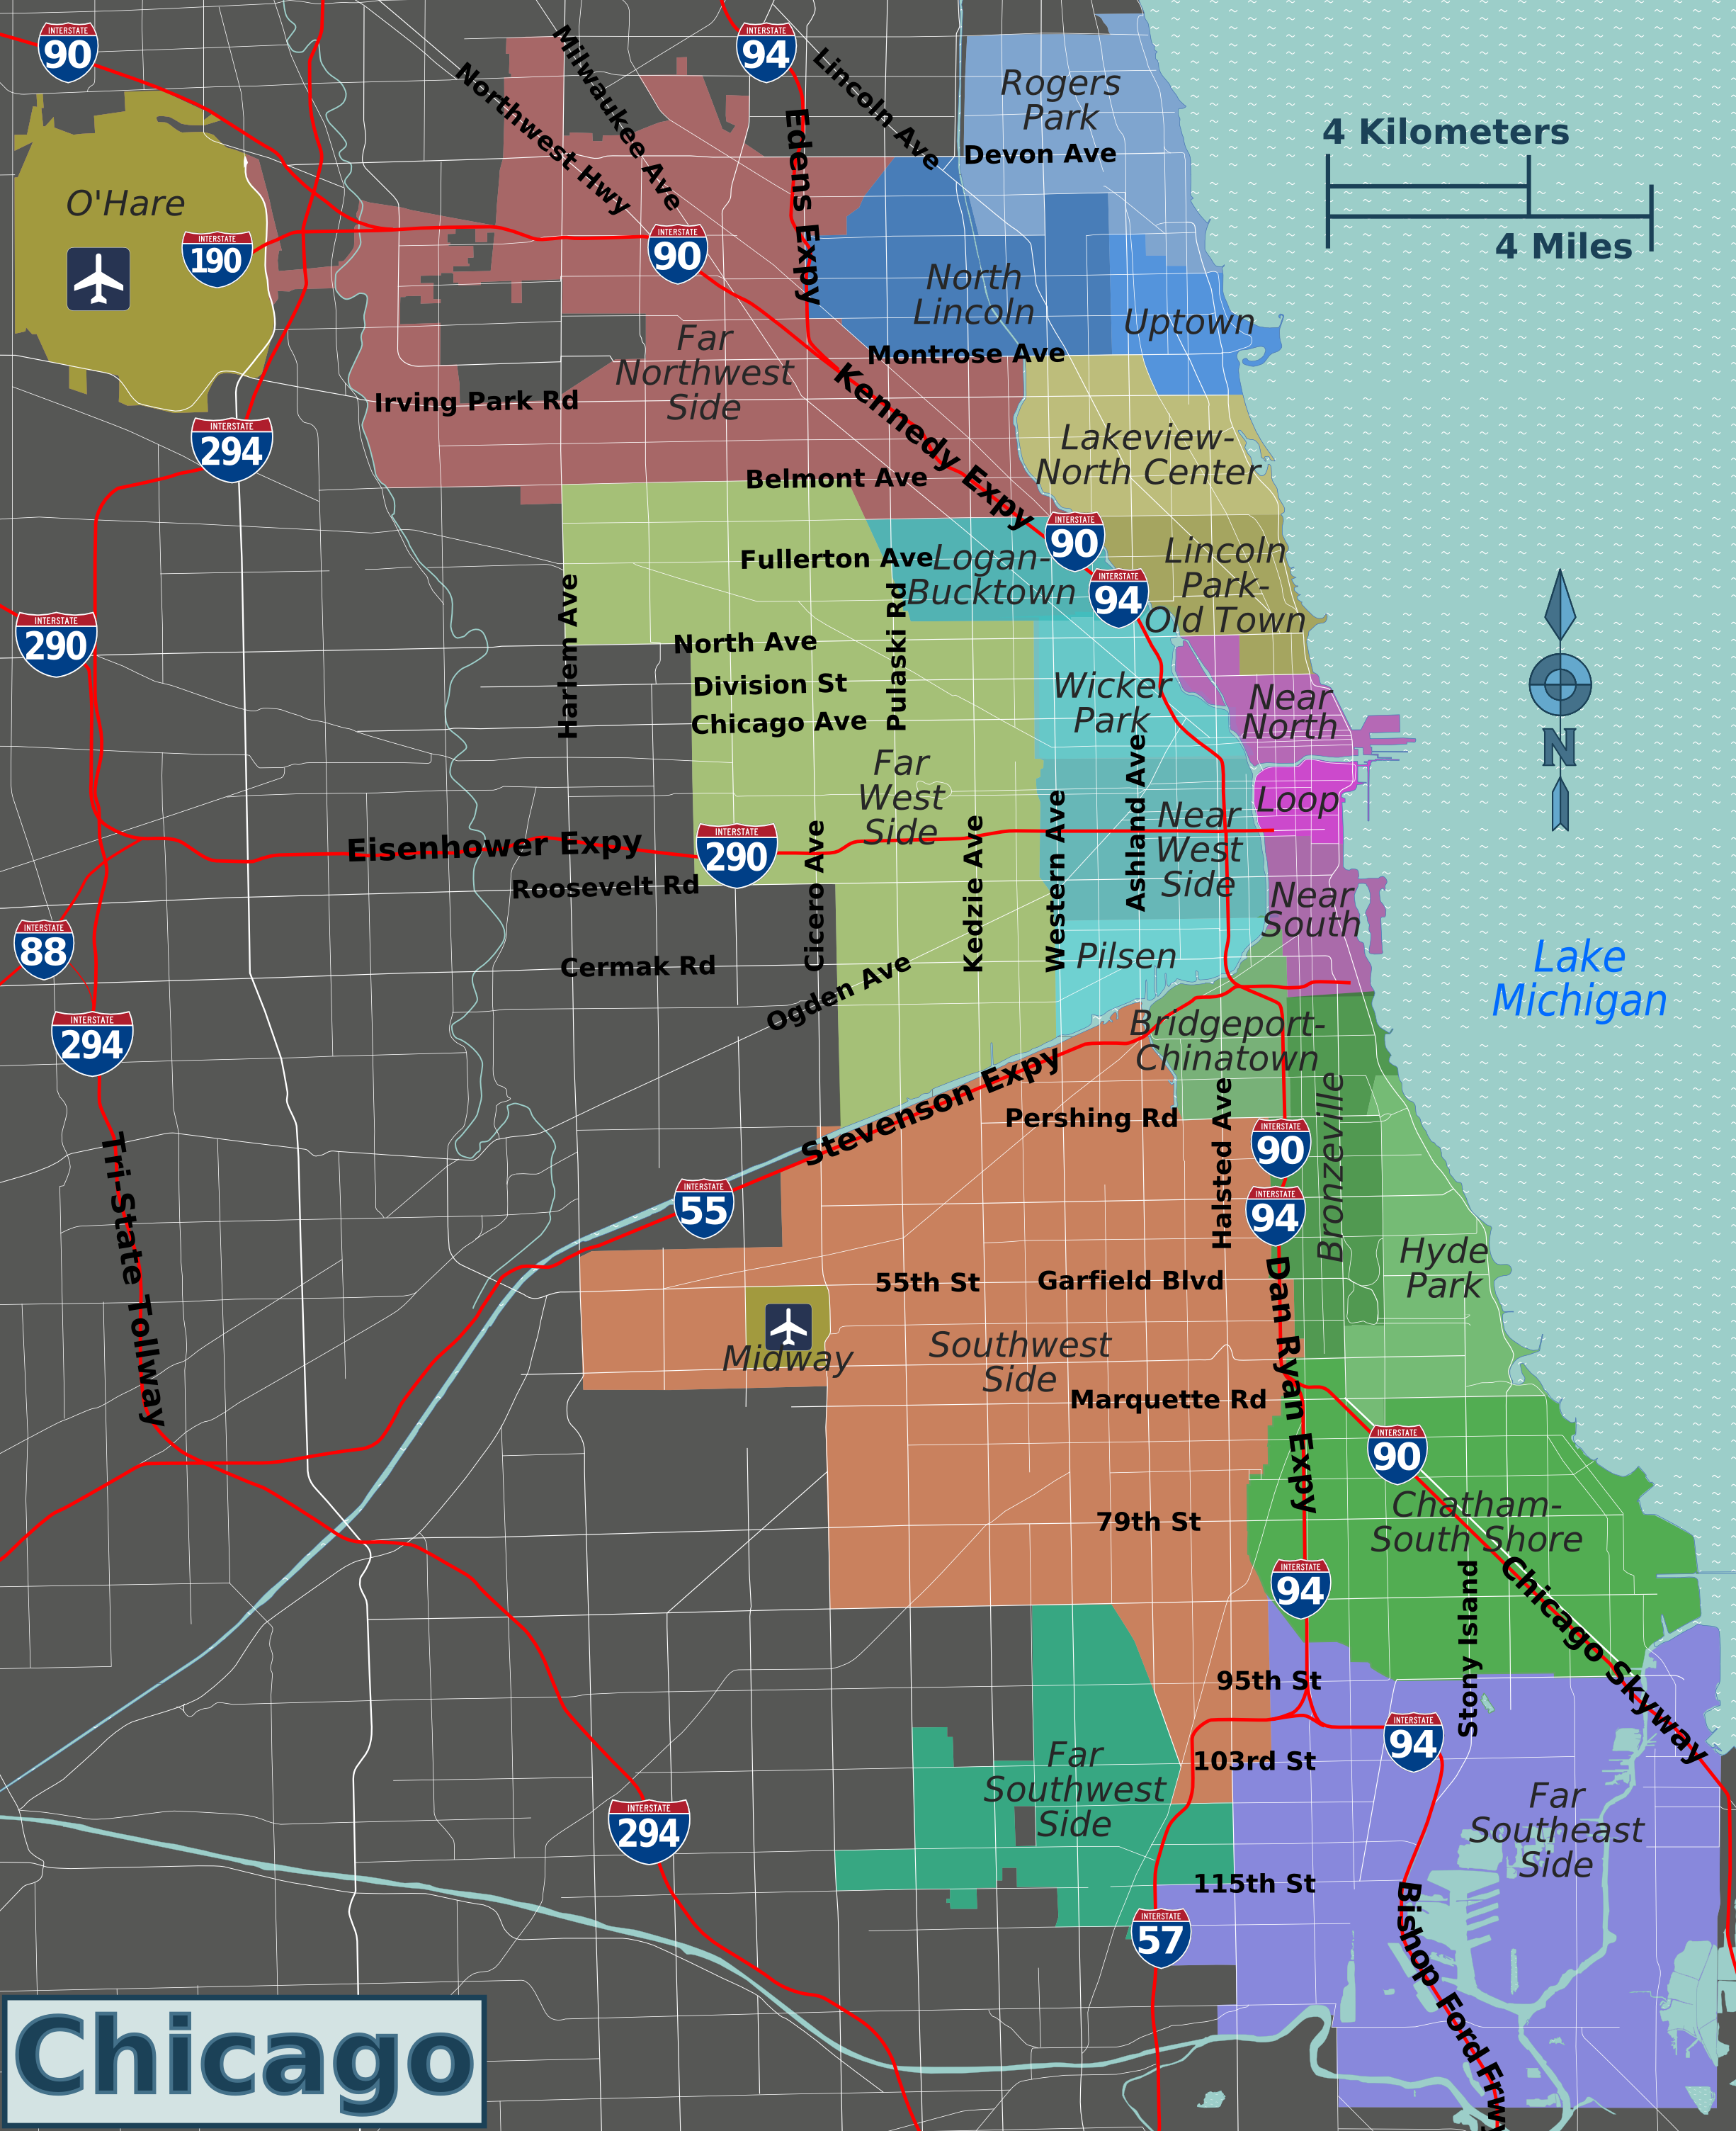 FileIntegrated Chicago Districts Mappng